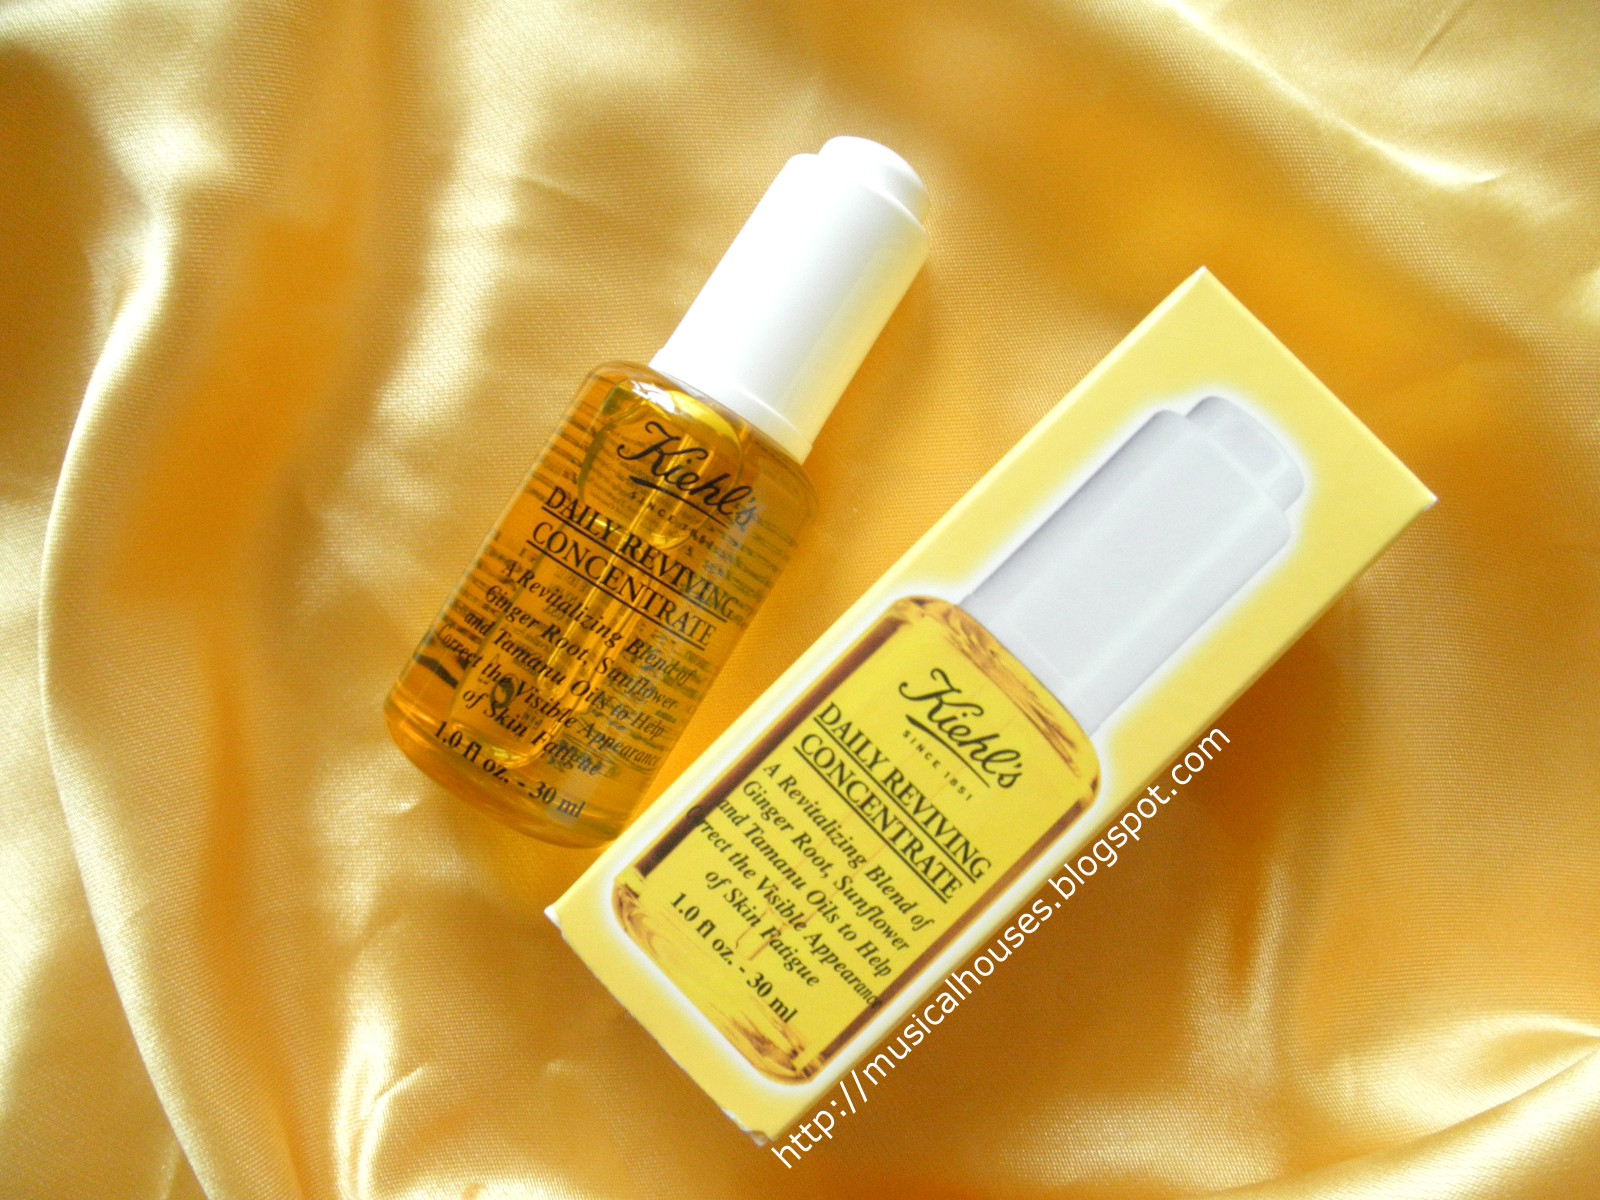 Daily Reviving Concentrate by Kiehls #7